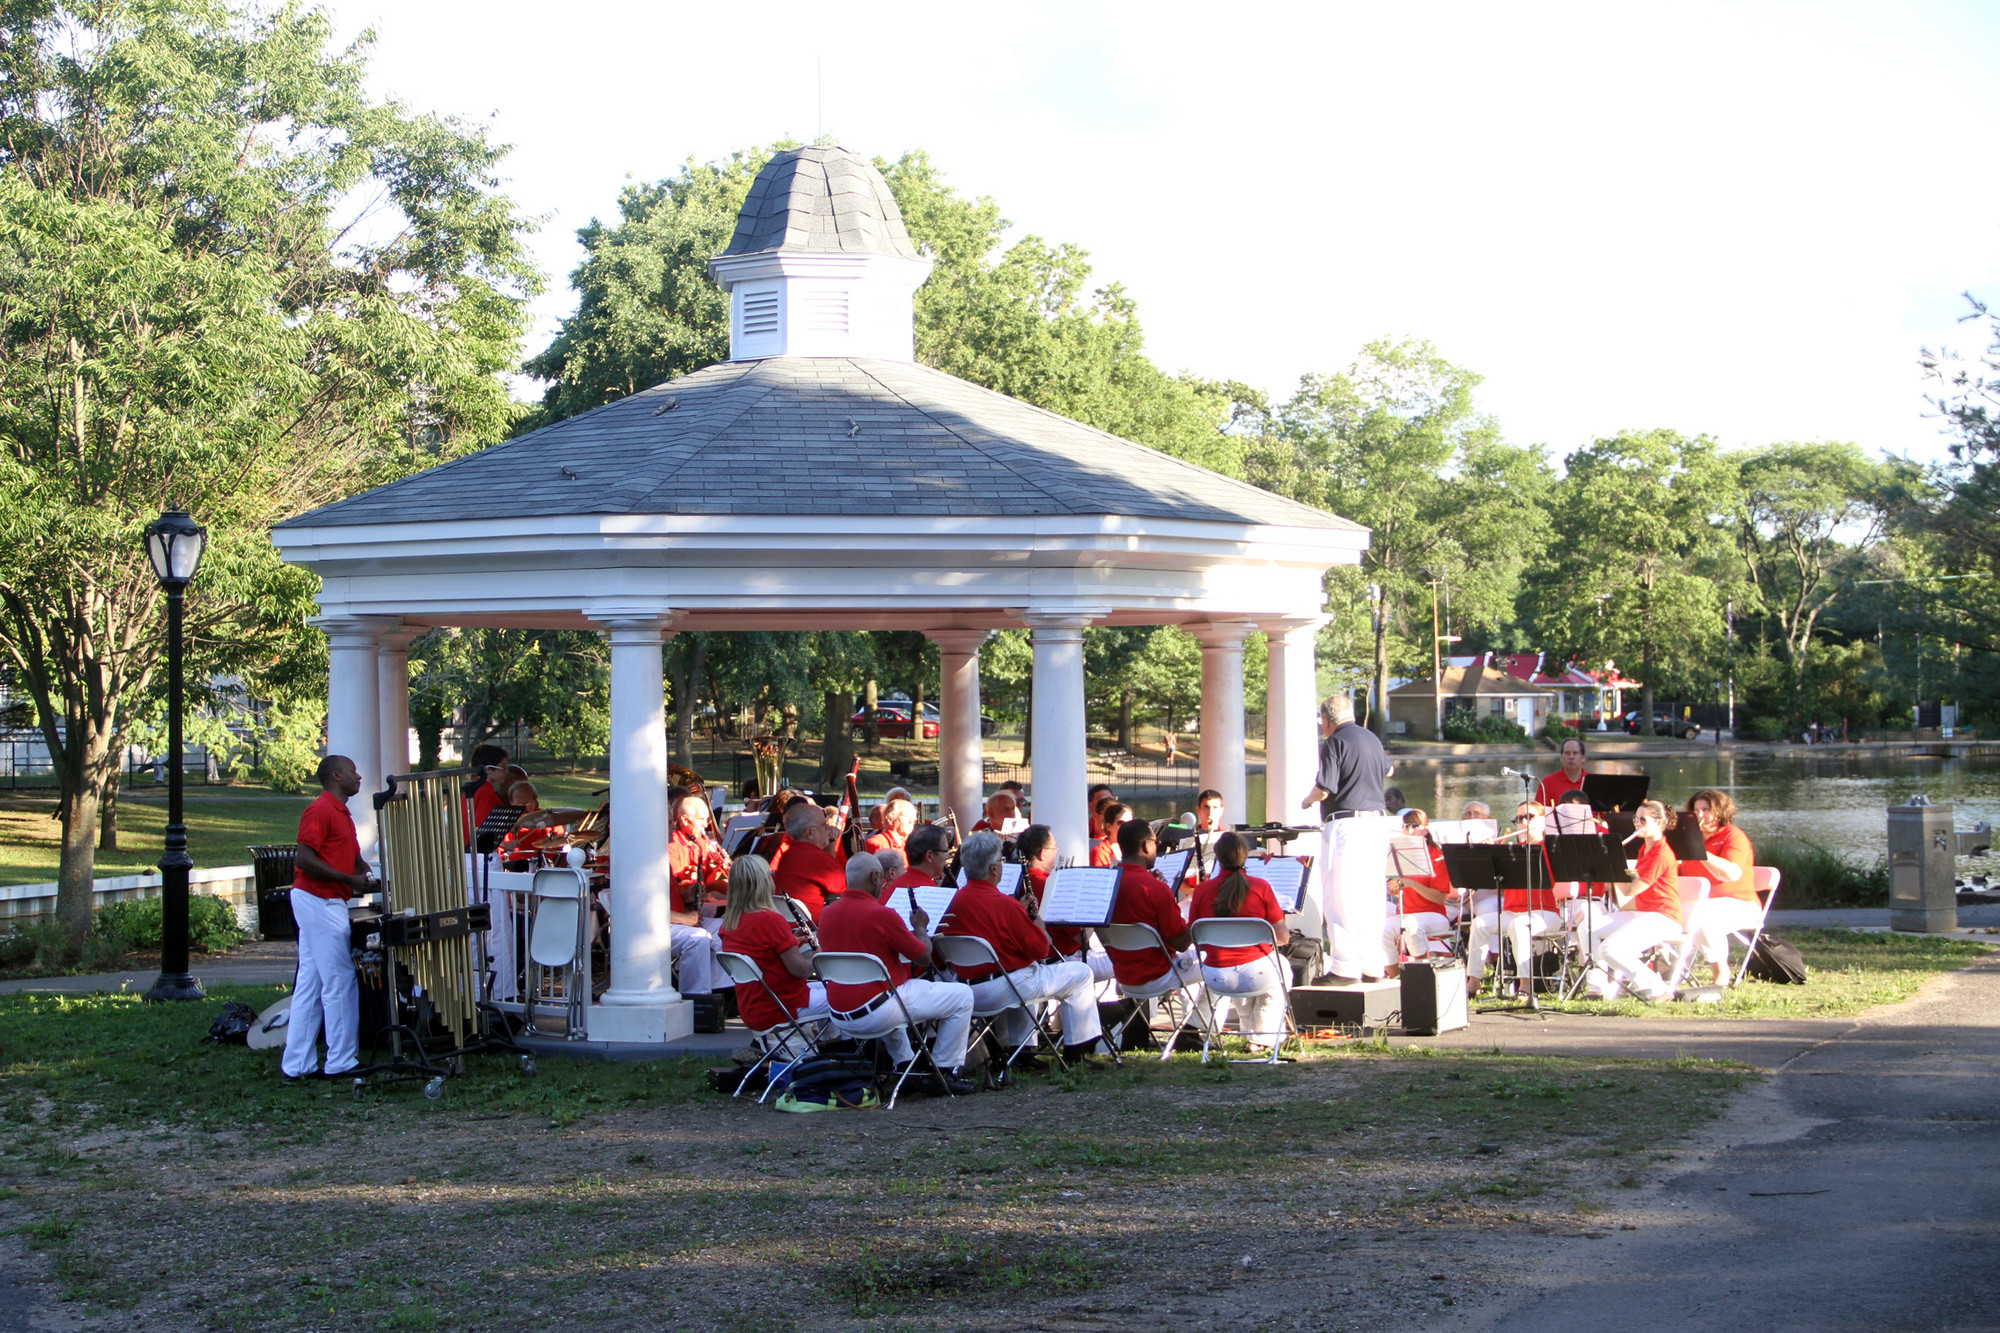 The Band of Long Island performed at Hall's Pond Park on Sunday evening.